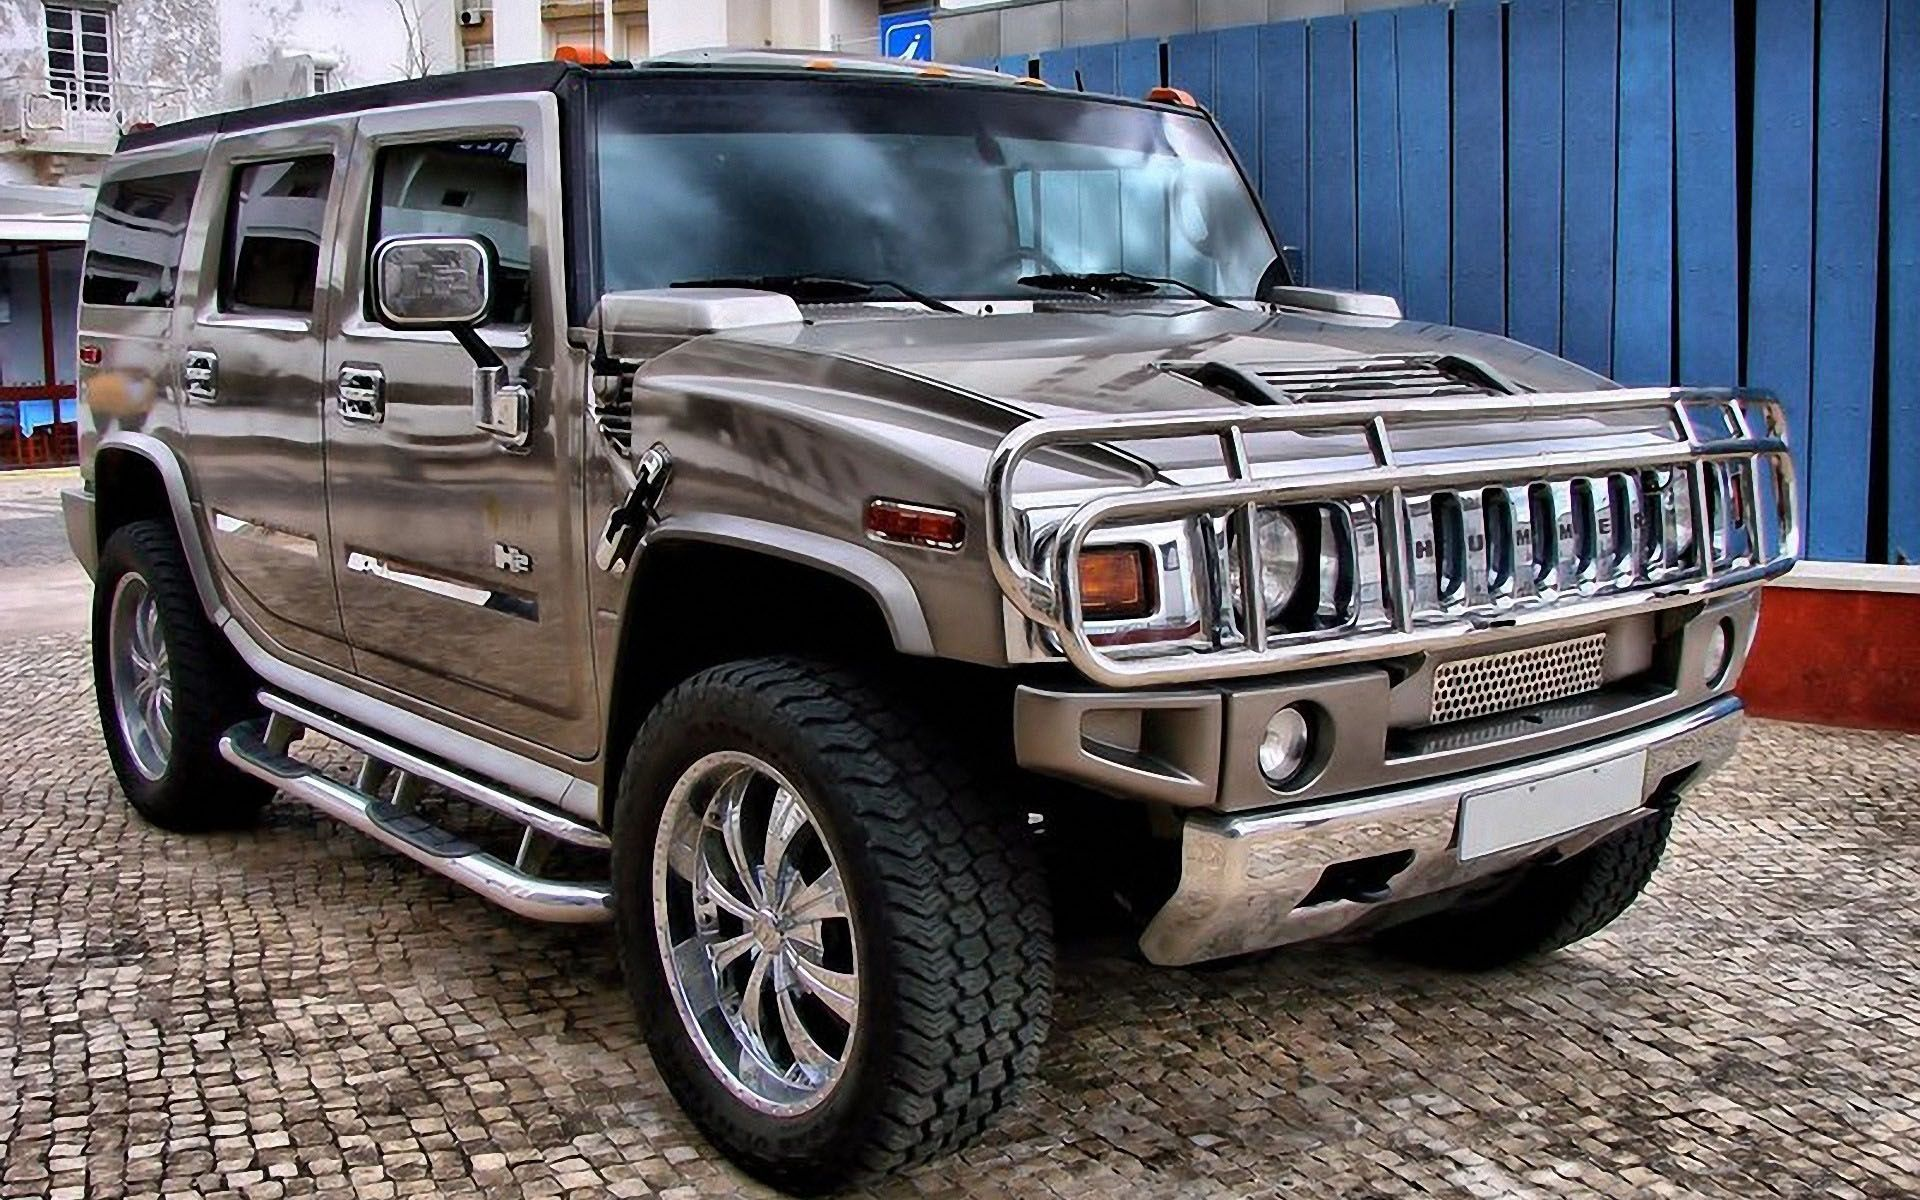 2015 Hummer H2 Review and Price